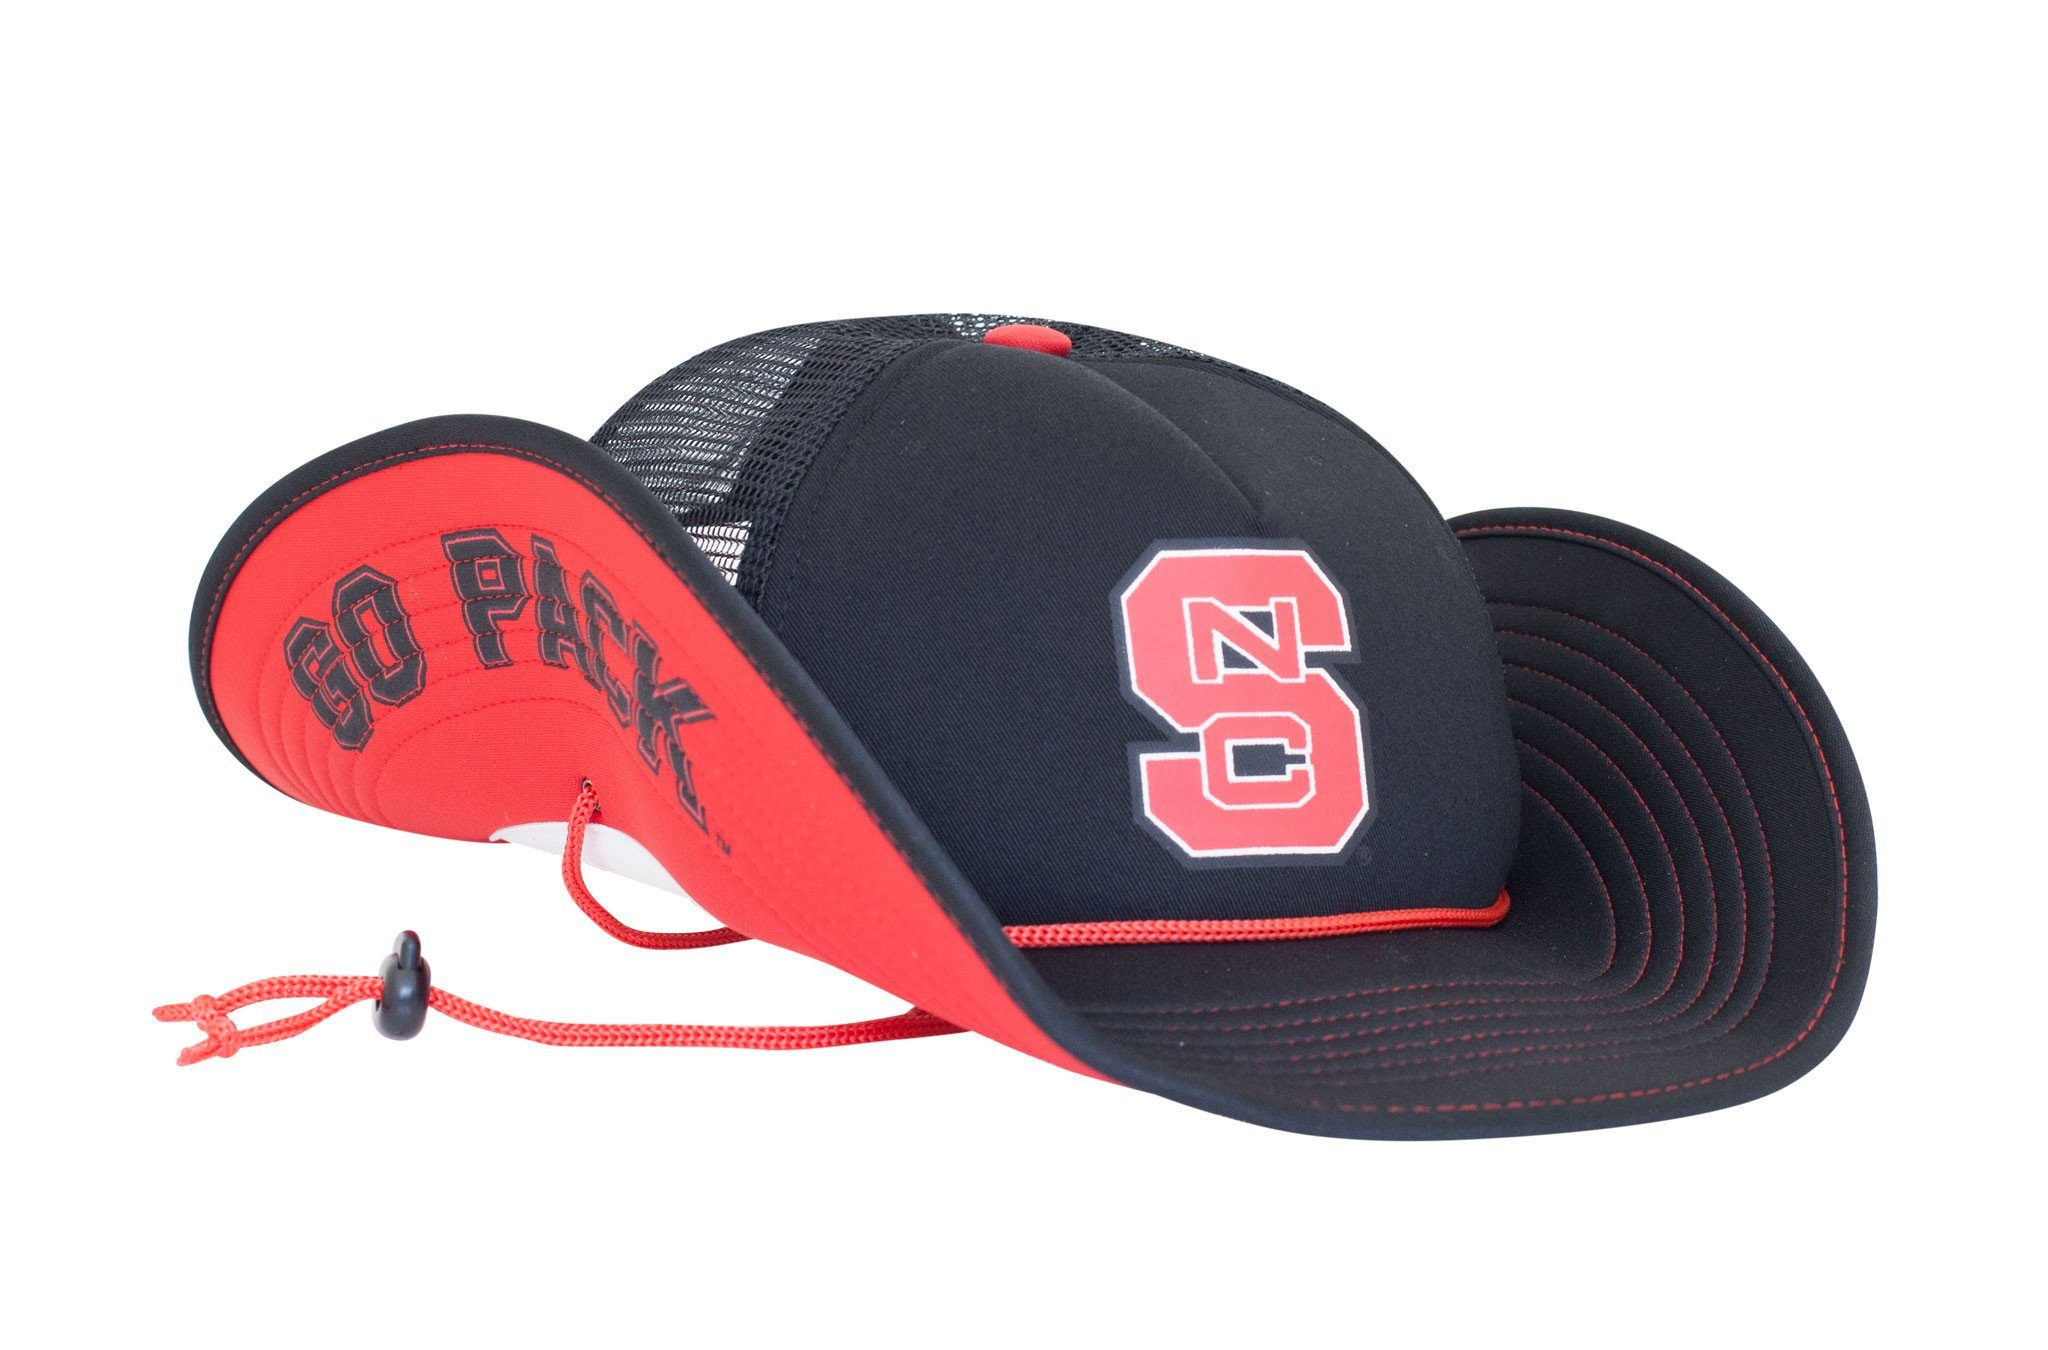 new concept 41bea d5df2 buy nc state dh fitted hat by zephyr black 77e4a b4628  50% off nc state  snapback buckers a17e5 428a2